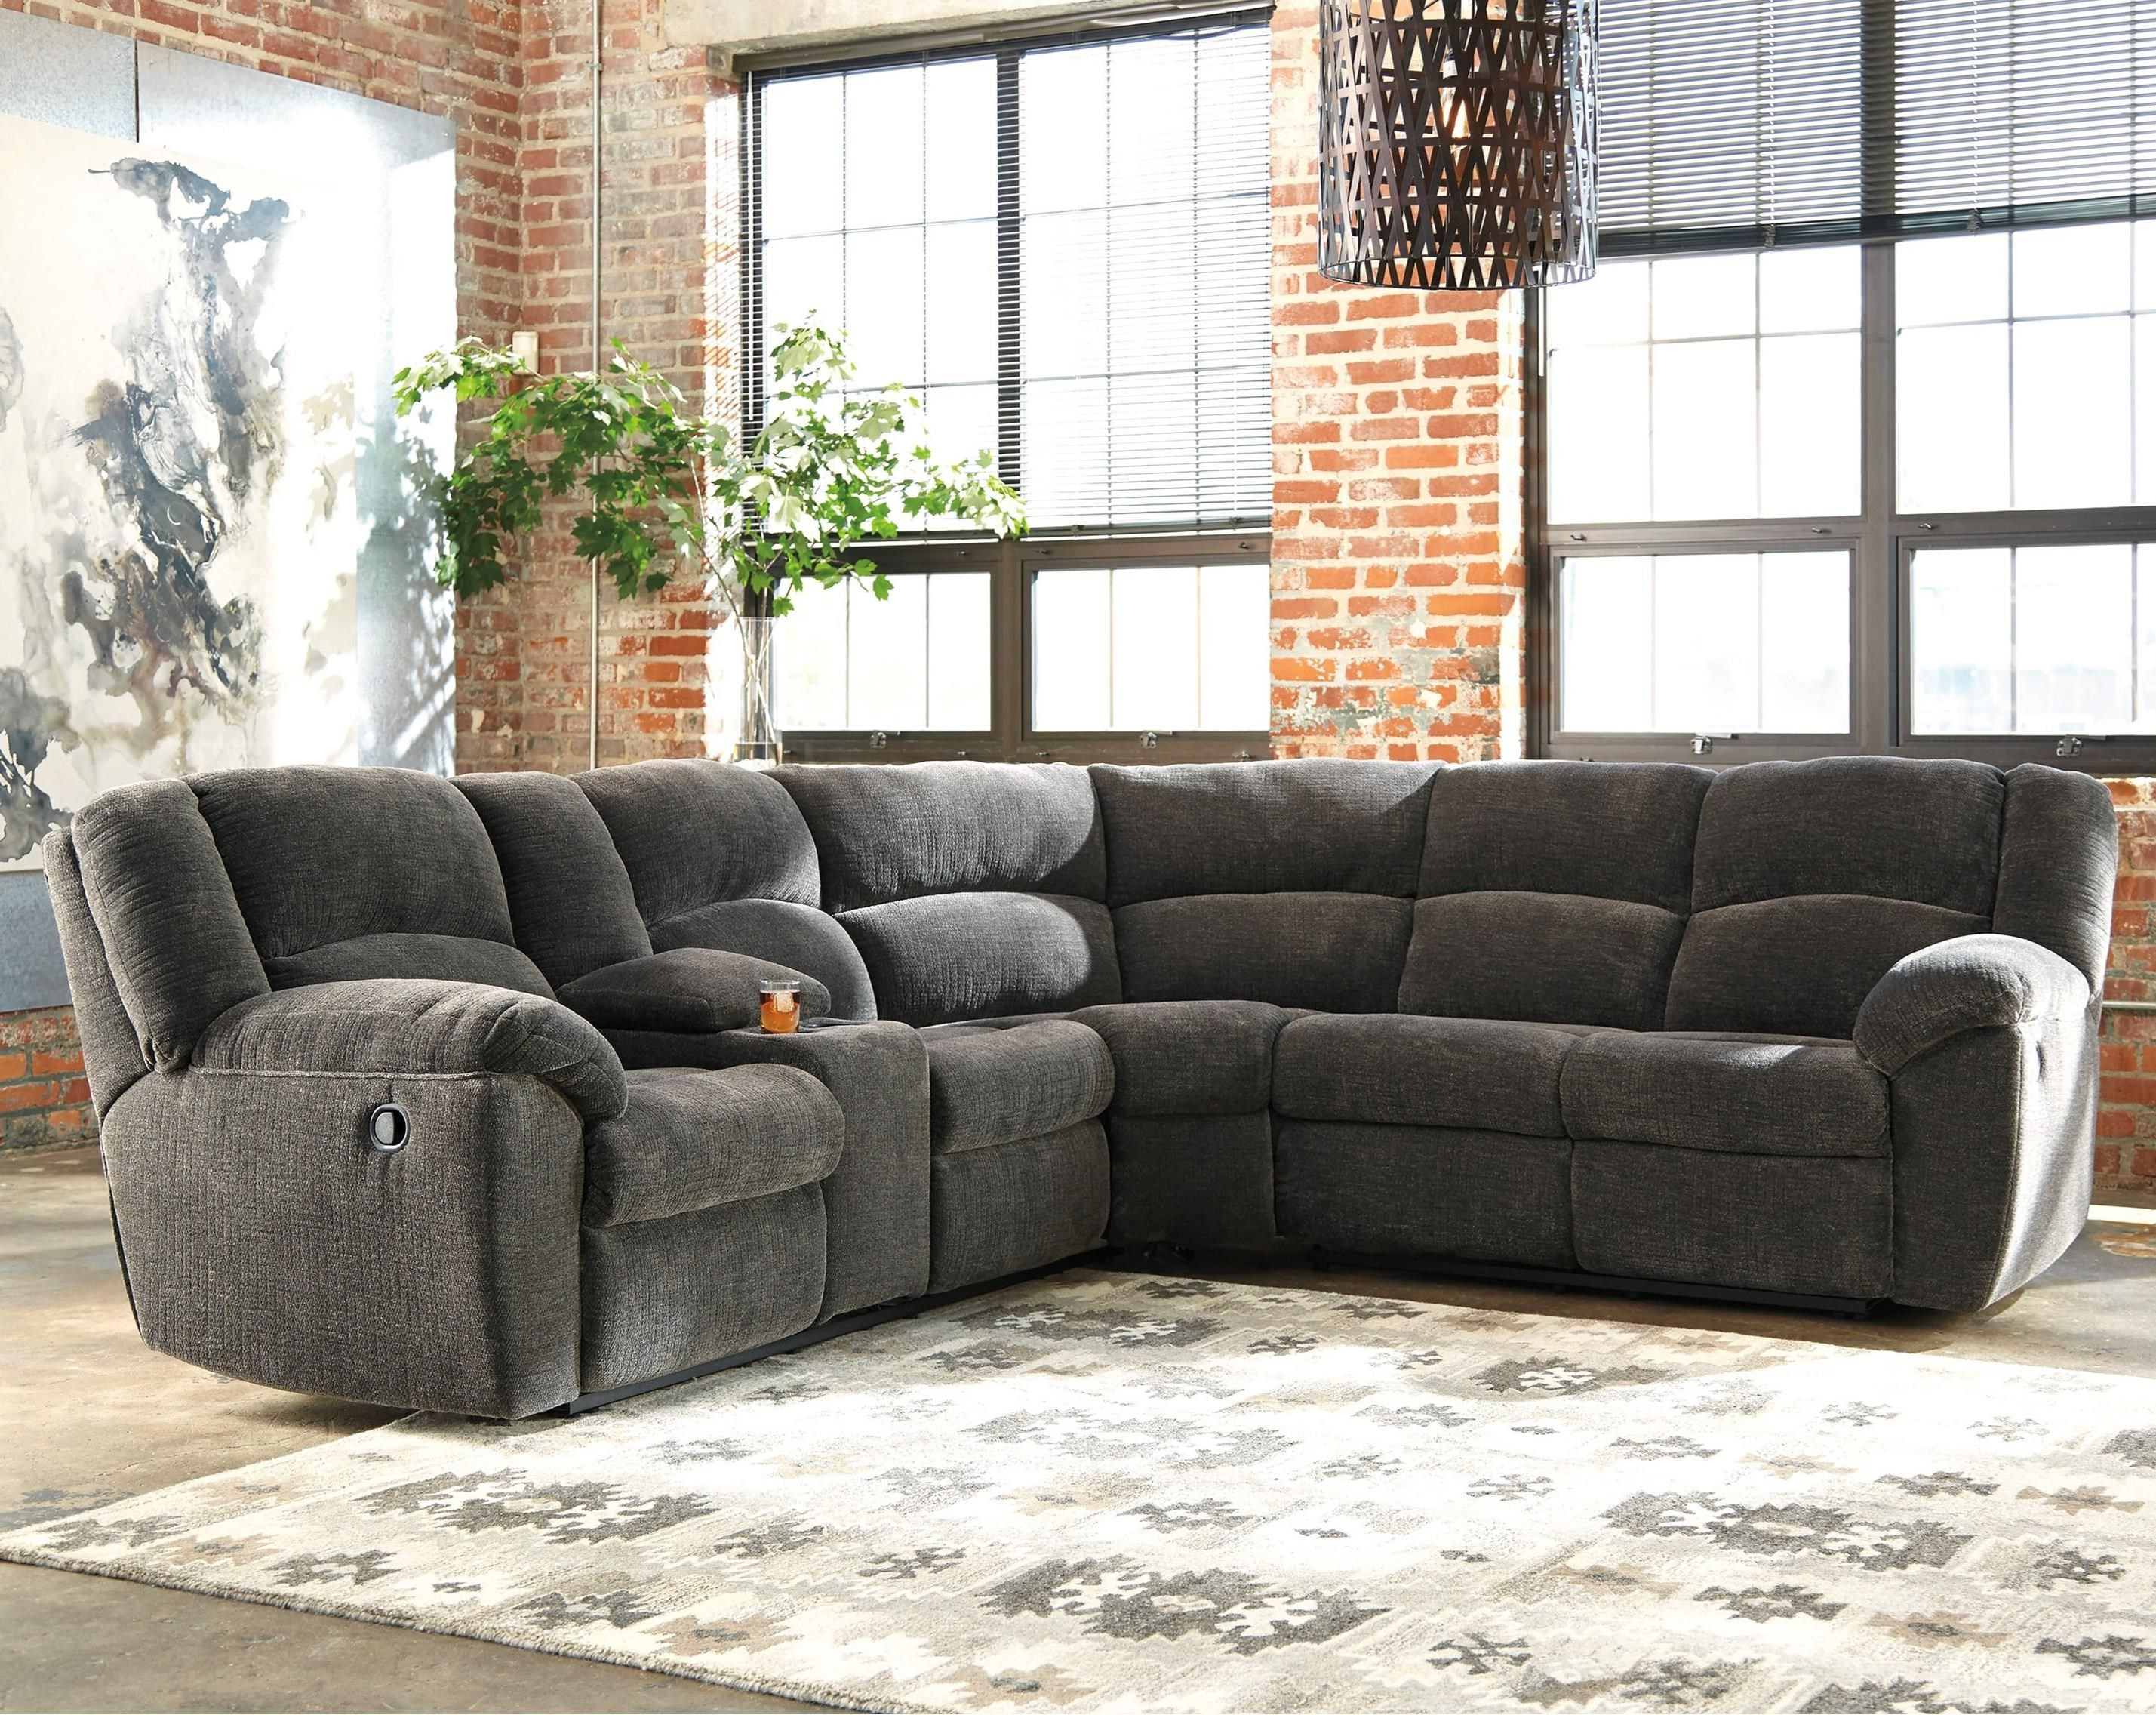 Timpson Reclining Sectional By Benchcraft Sectional Sofa With Recliner Power Reclining Sectional Sofa Reclining Sectional